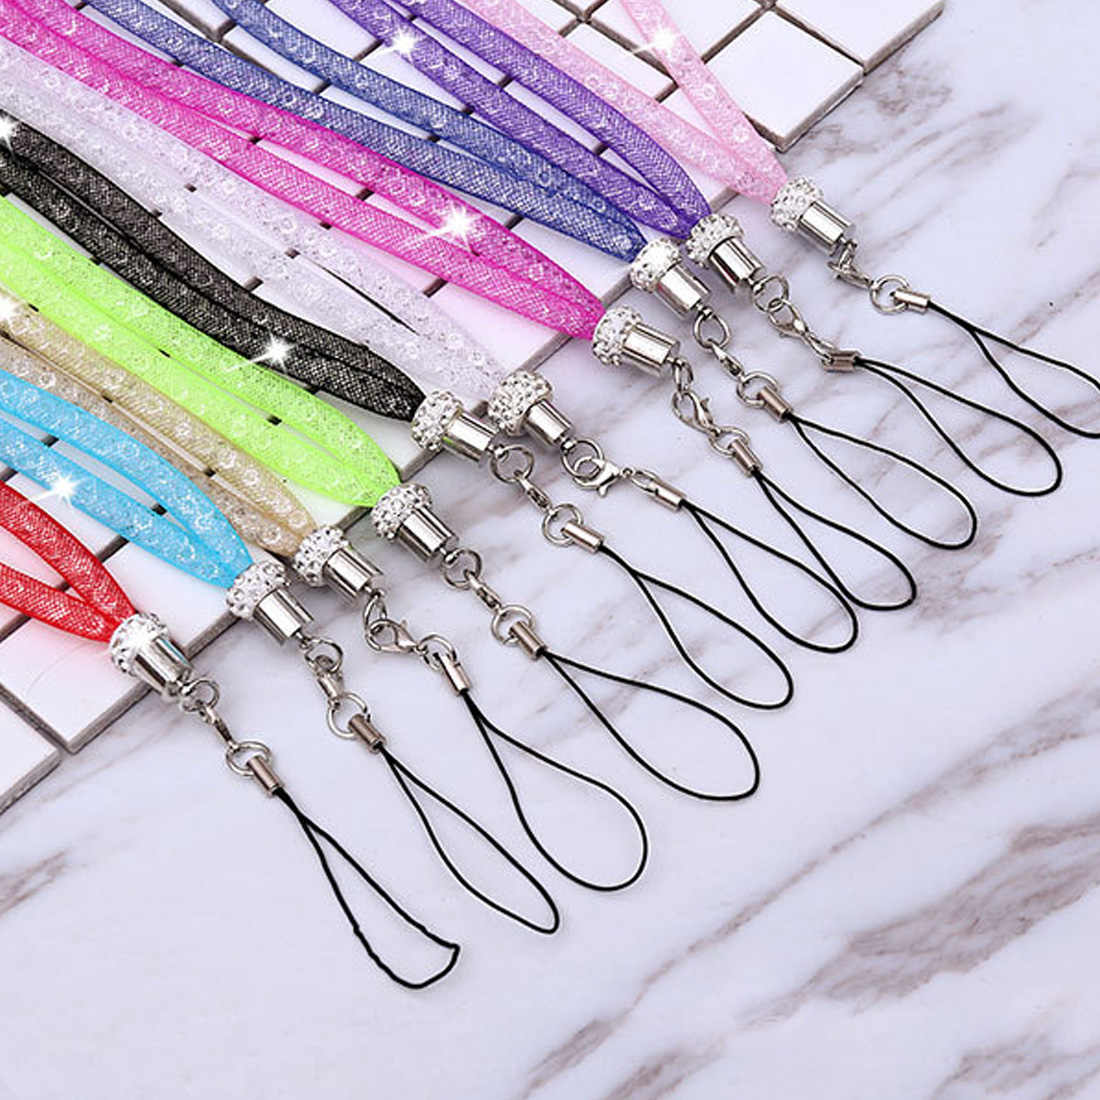 ABAY Crystal Neck Necklace Strap Lanyard U Disk ID Work Card Mobile Cell Phone Chain Straps Keychain Phone Hang Rope for Iphone